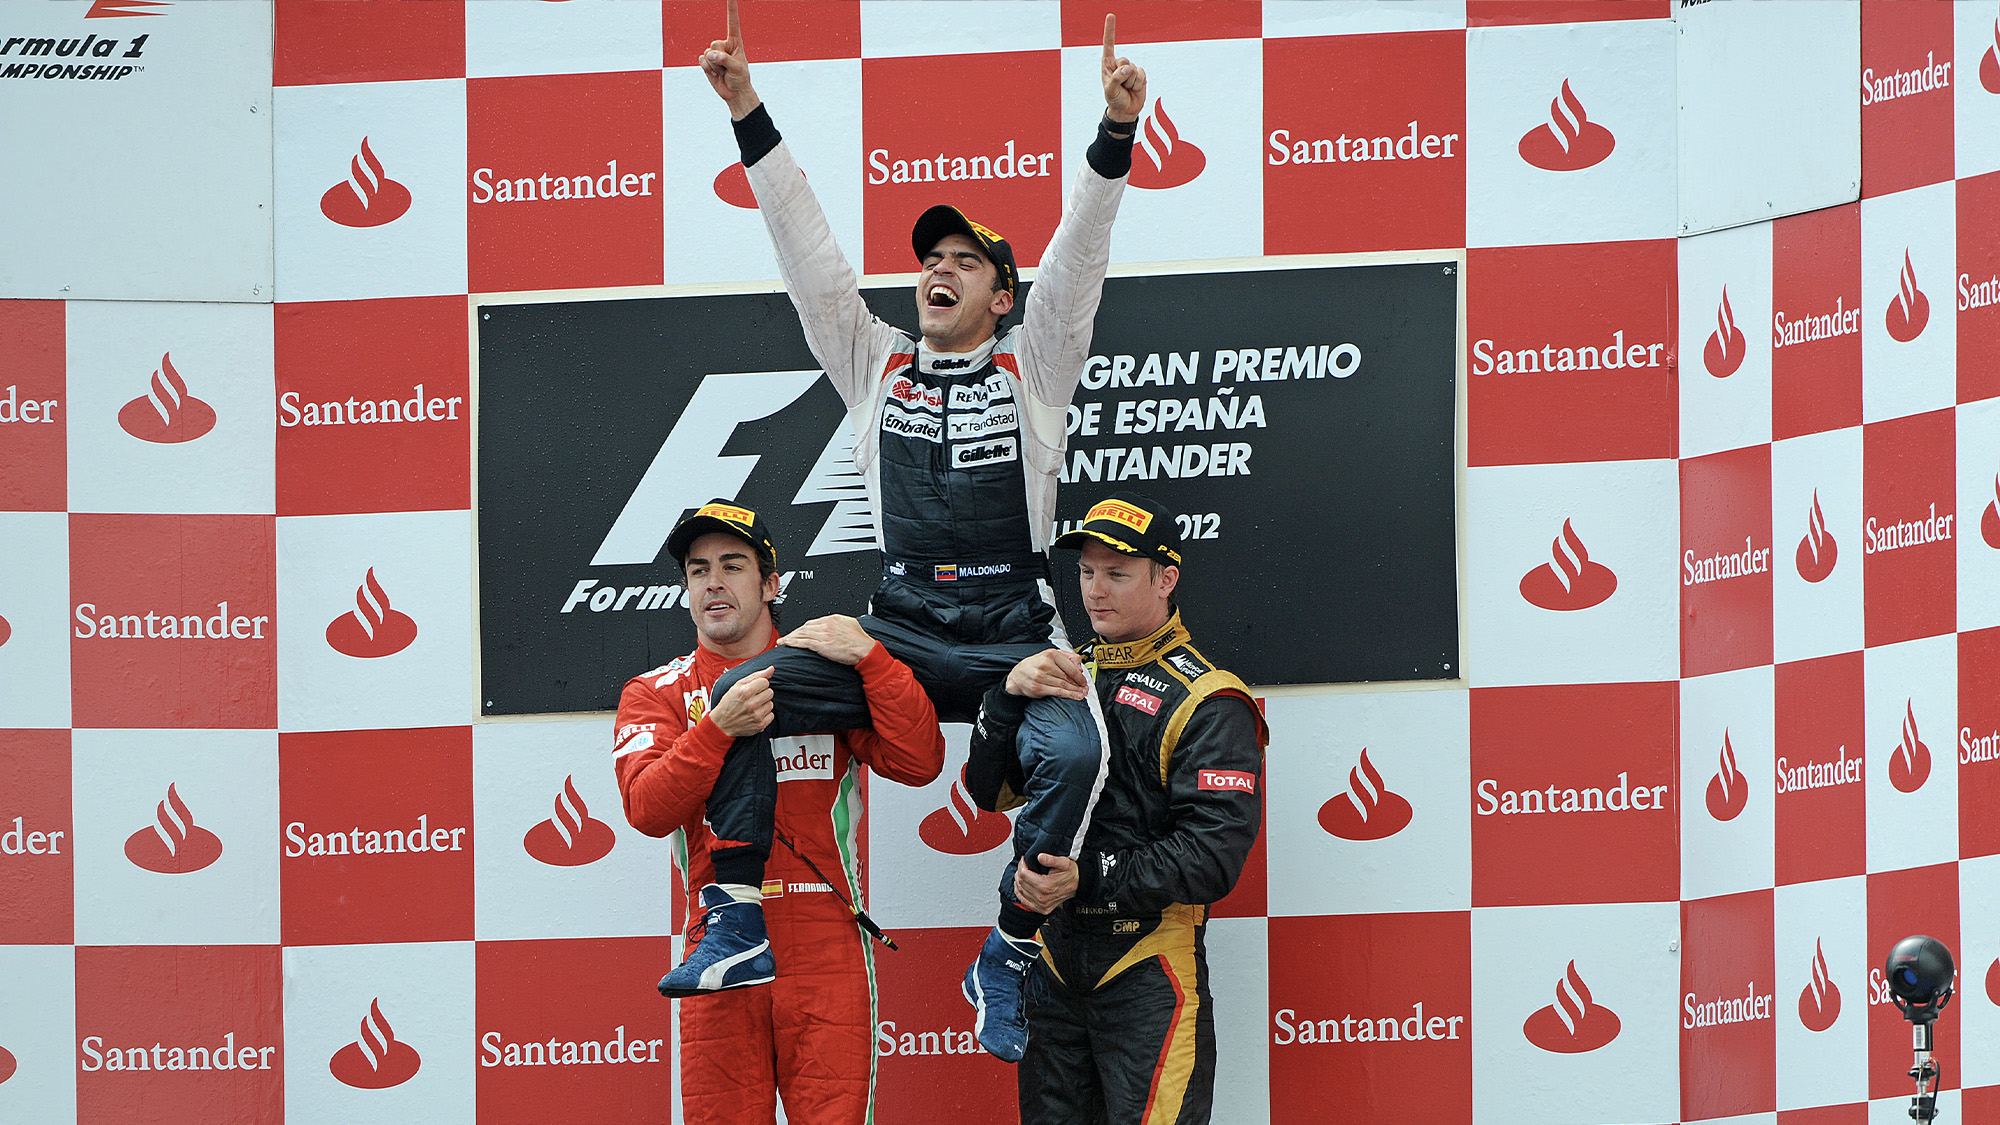 Pastor Maldonado is held up by Fernando Alonso and Kimi Raikkonen on the podium after winning the 2012 F1 Spanish Grand Prix